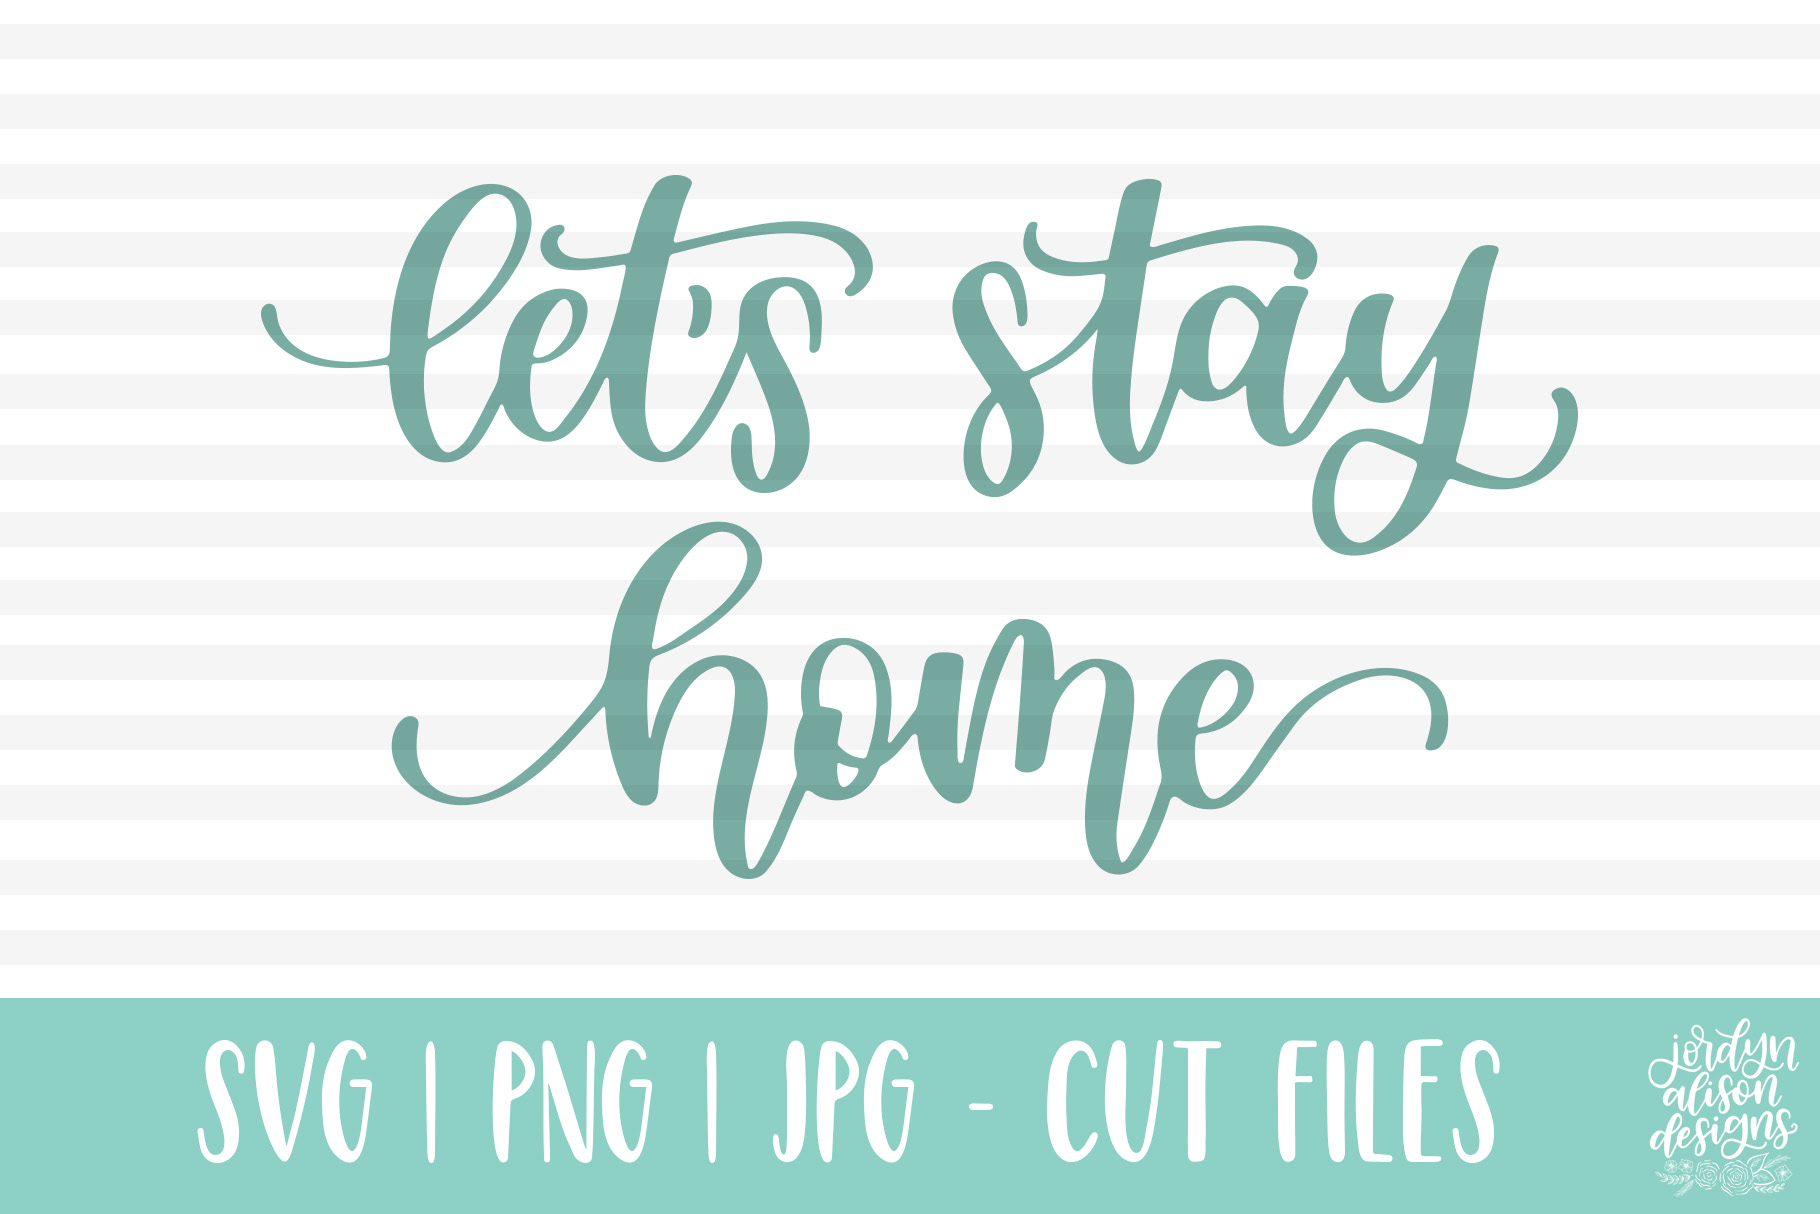 Download Free Let S Stay Home Handlettered Graphic By Jordynalisondesigns for Cricut Explore, Silhouette and other cutting machines.